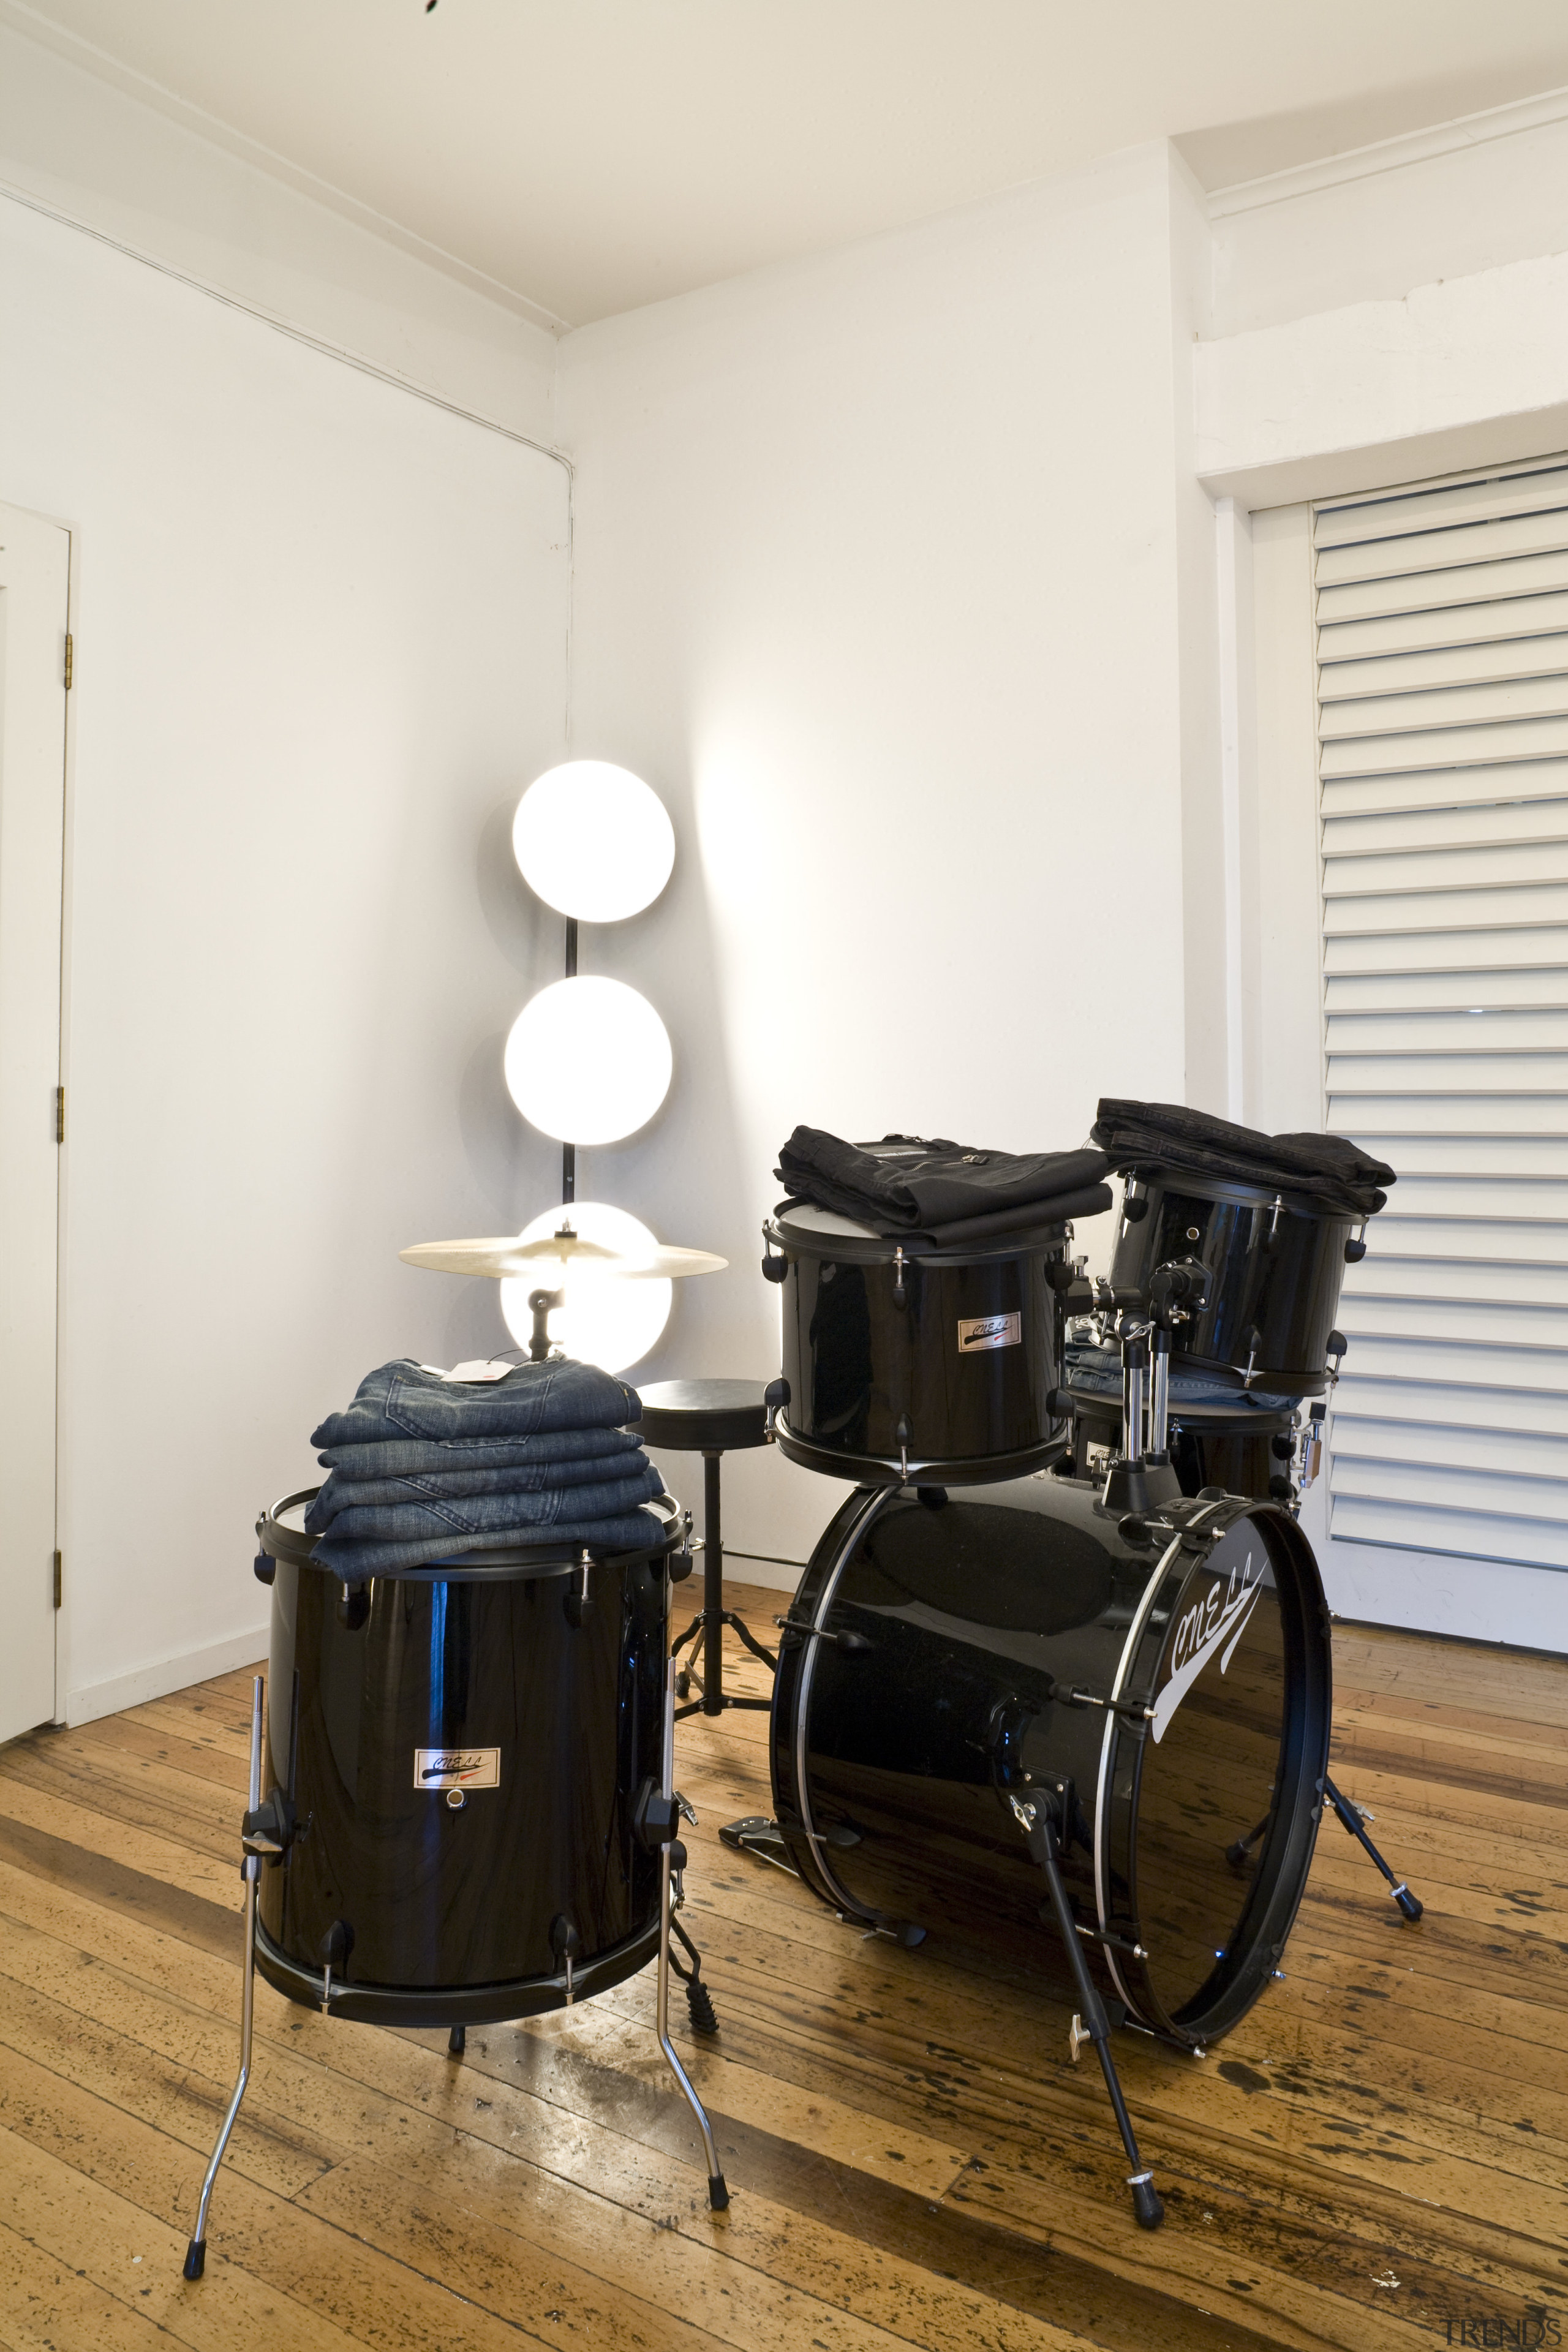 View of a drum kit which is used cymbal, drum, drums, musical instrument, percussion, skin head percussion instrument, table, timbales, tom tom drum, white